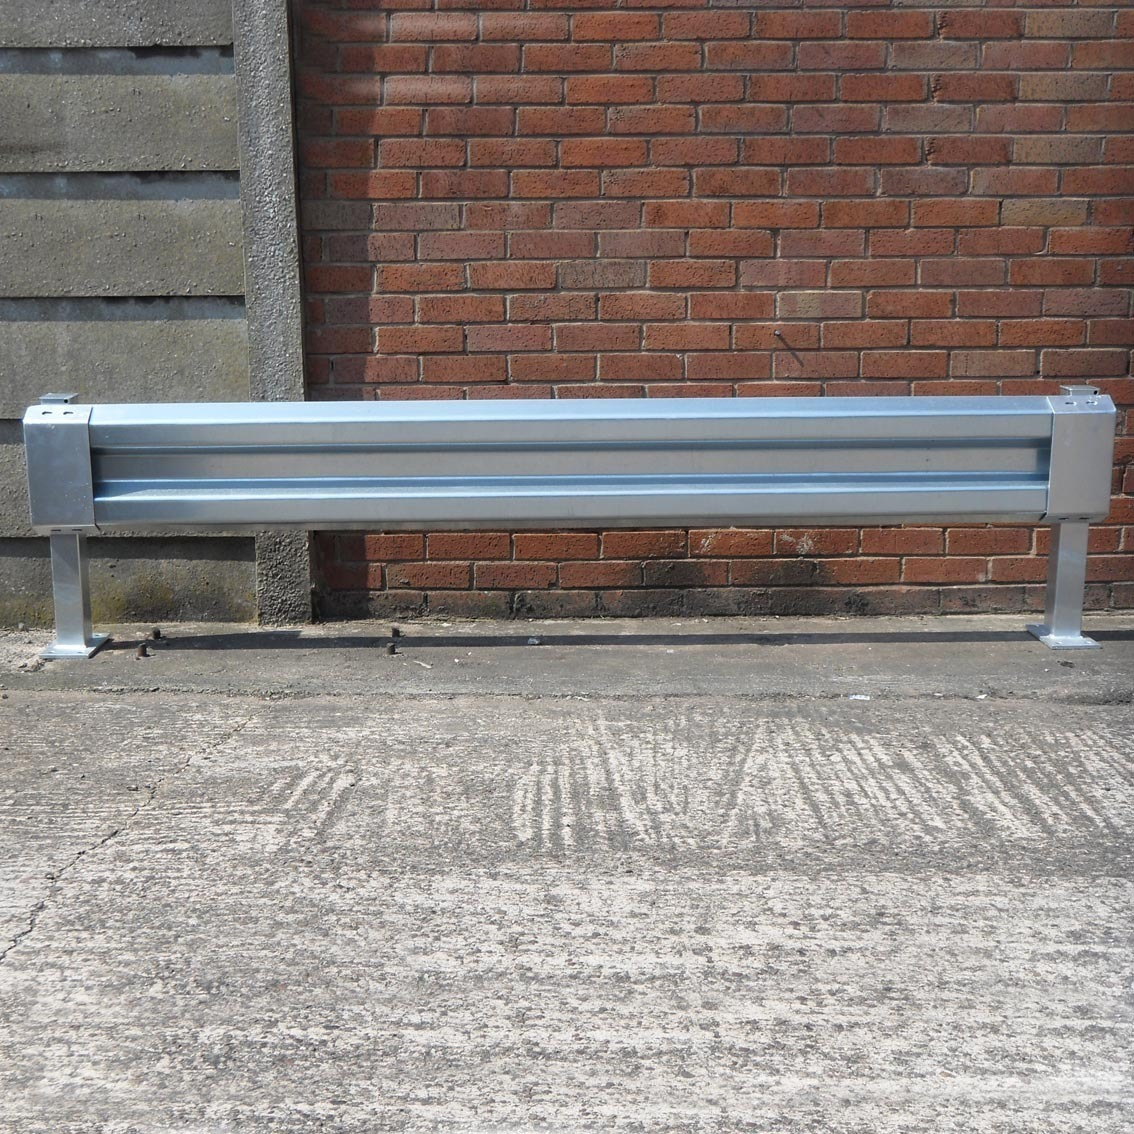 Sectional steel barrier with pedestrian friendly ends